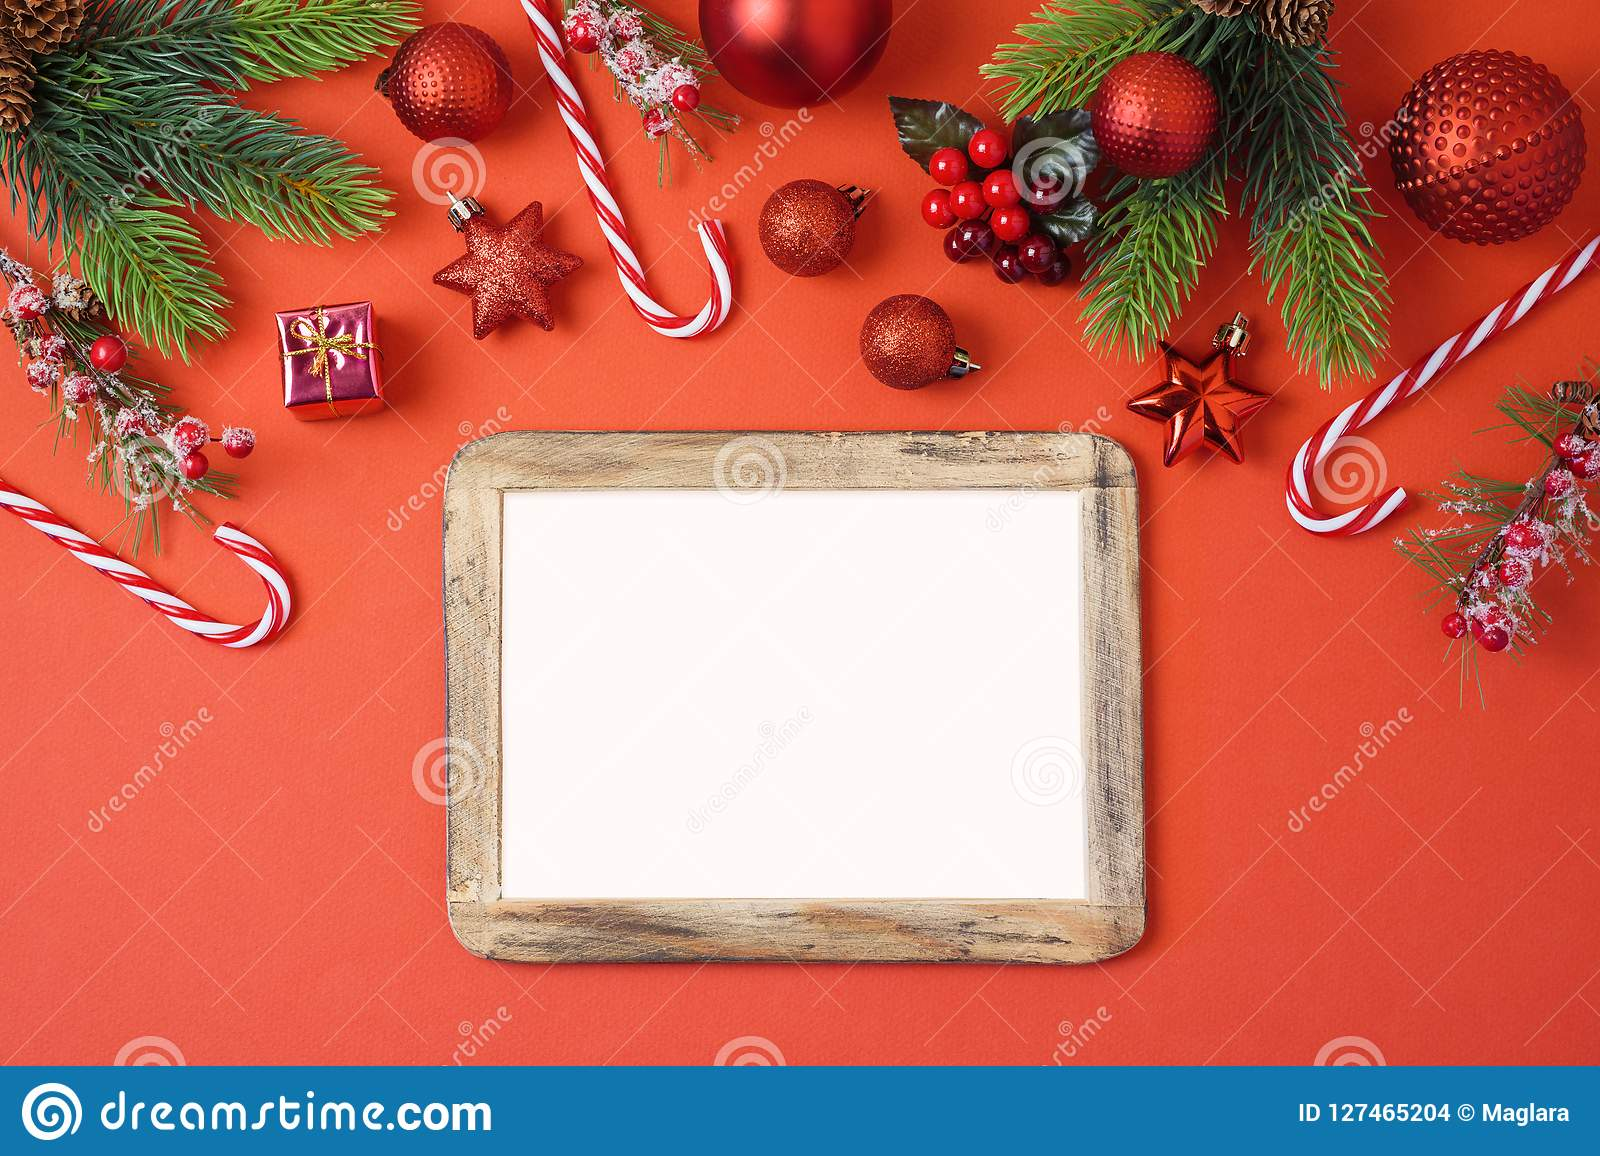 Christmas holiday background with photo frame, decorations and o